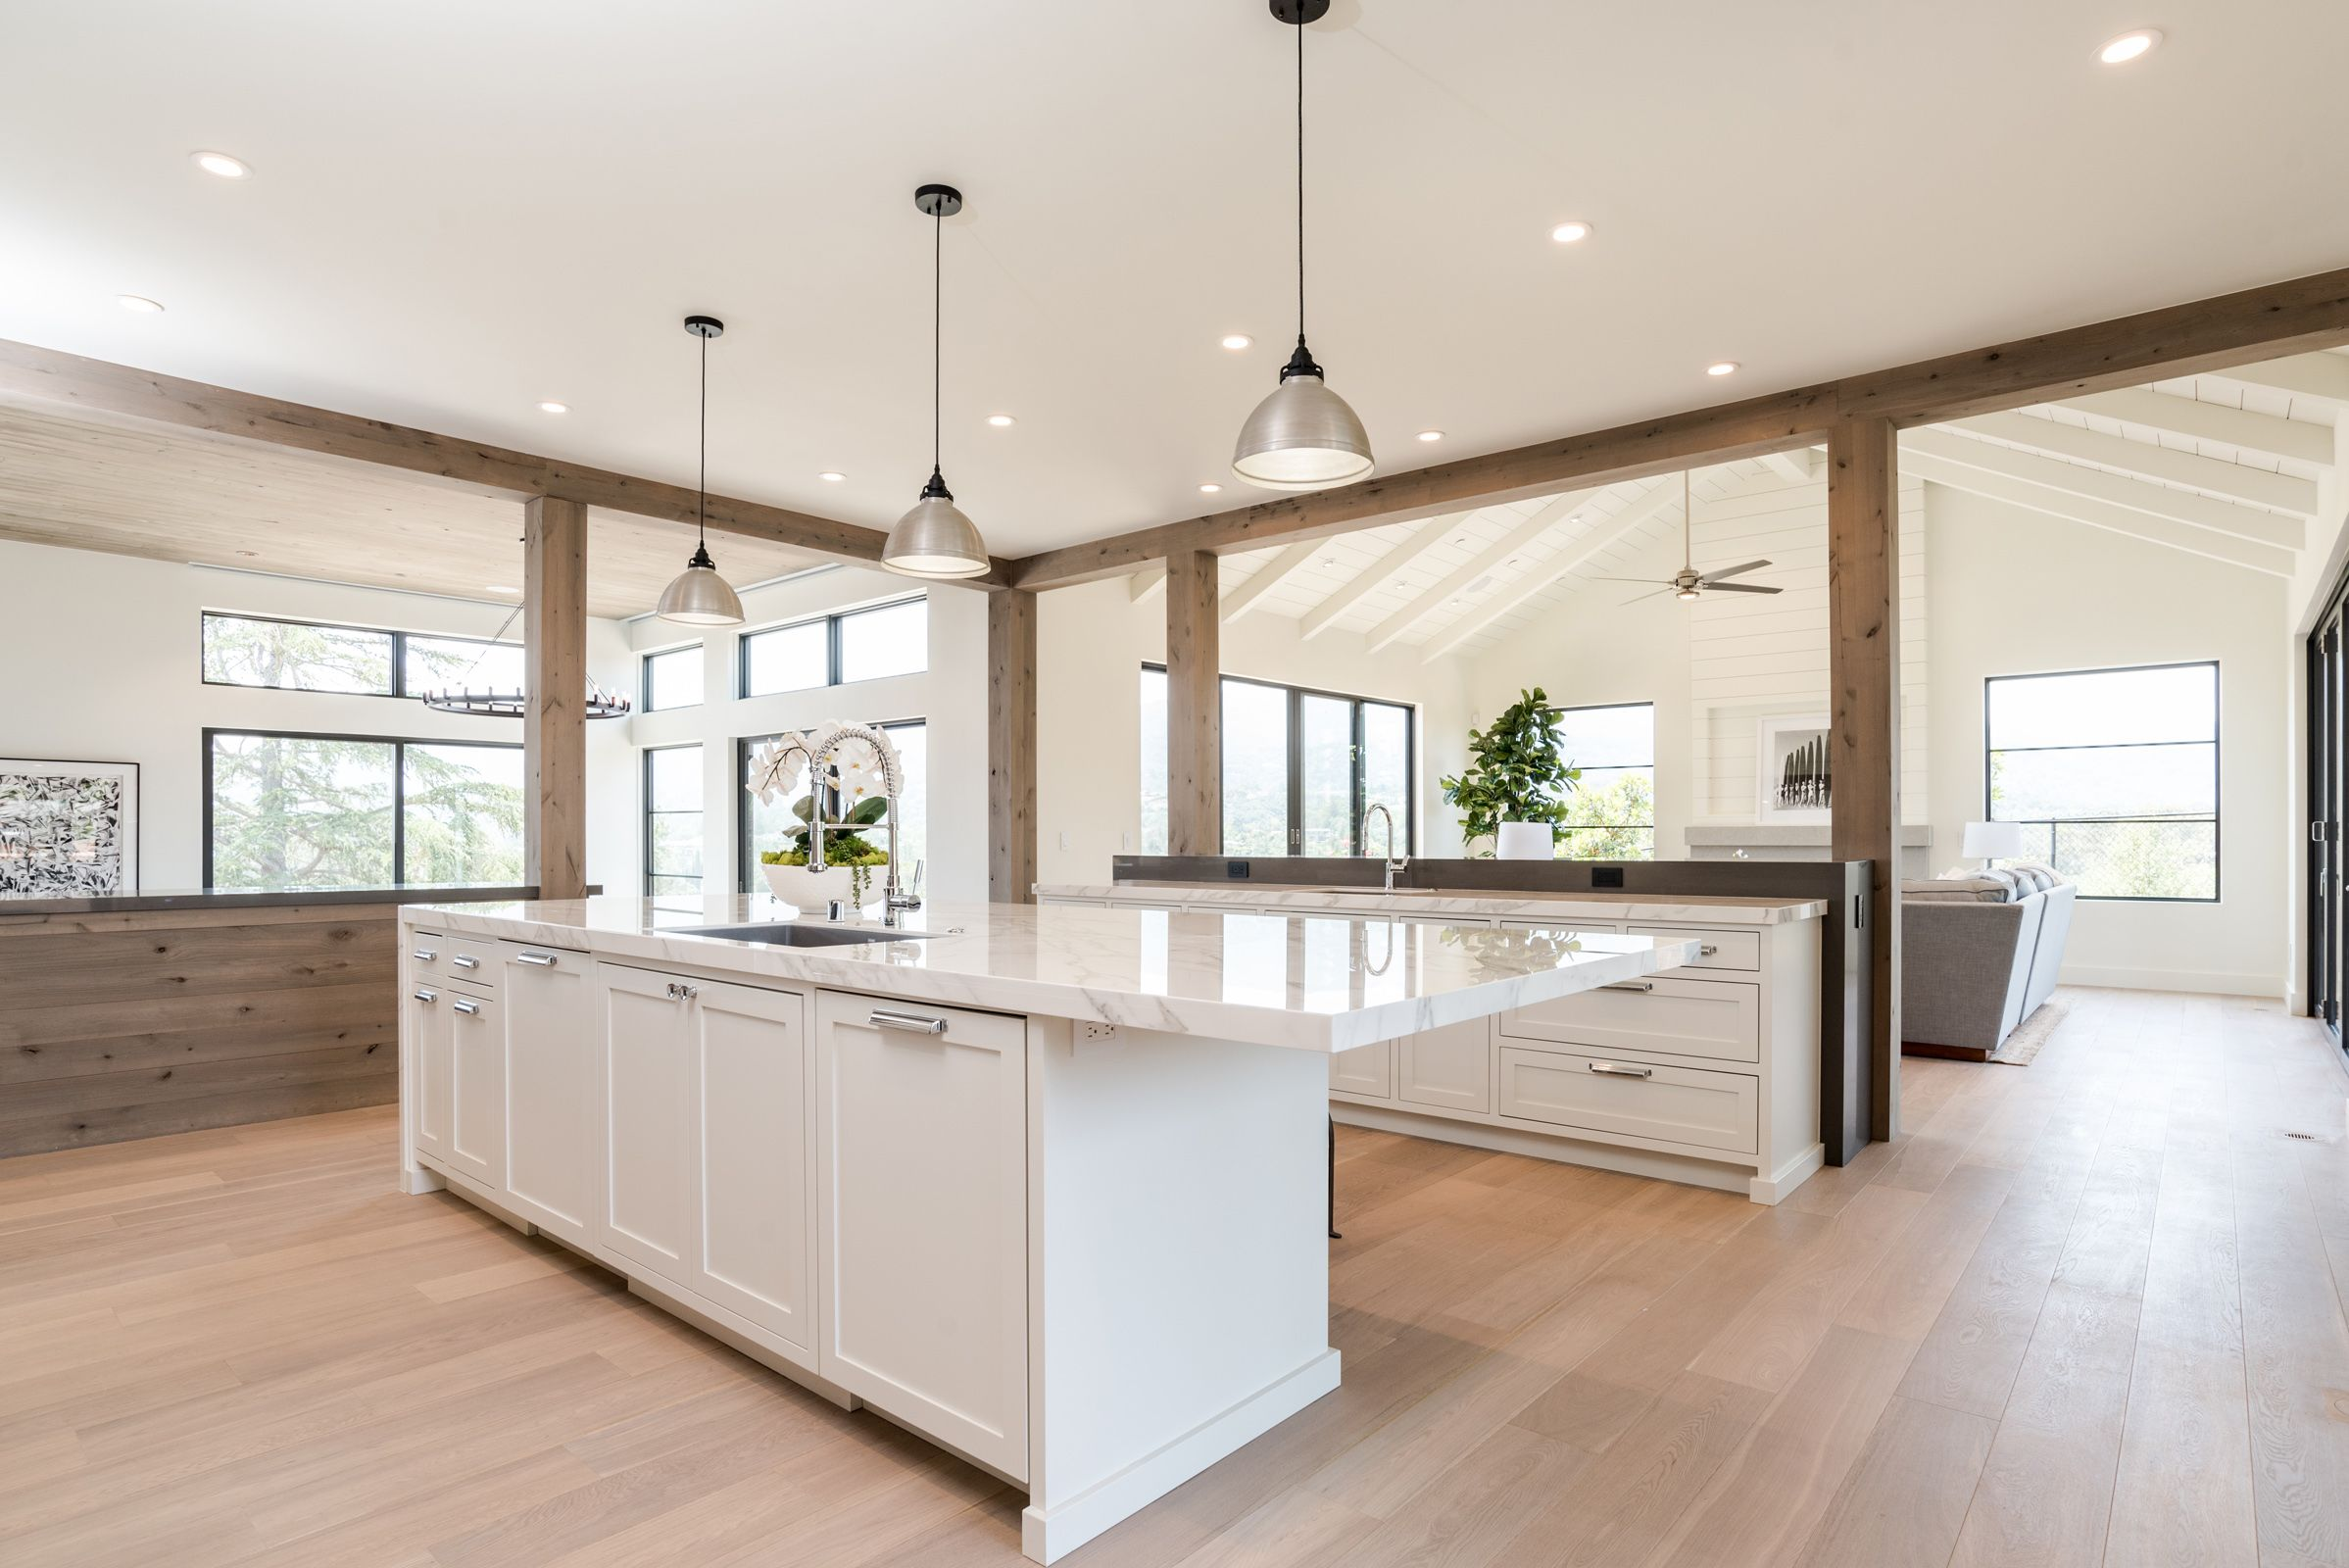 A Calm Contemporary Home in Northern California | Group photography ...